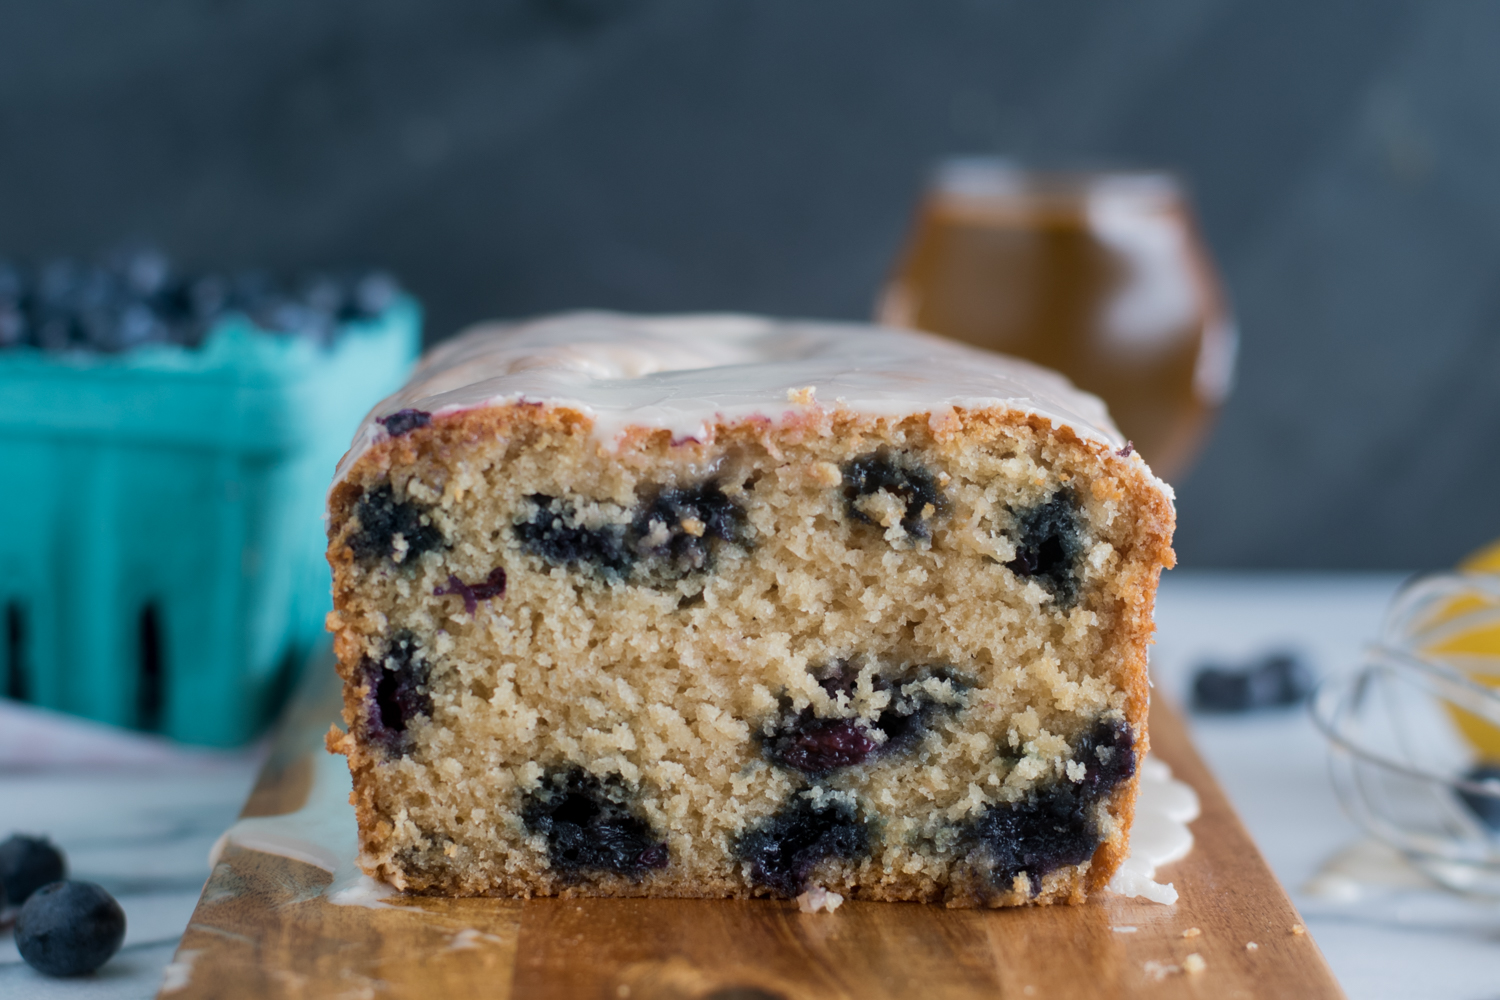 Blueberry golden summer ale creates a light and tender blueberry bread. Lemon zest and fresh lemon juice adds a bright citrus note that pairs beautiful with the blueberries.